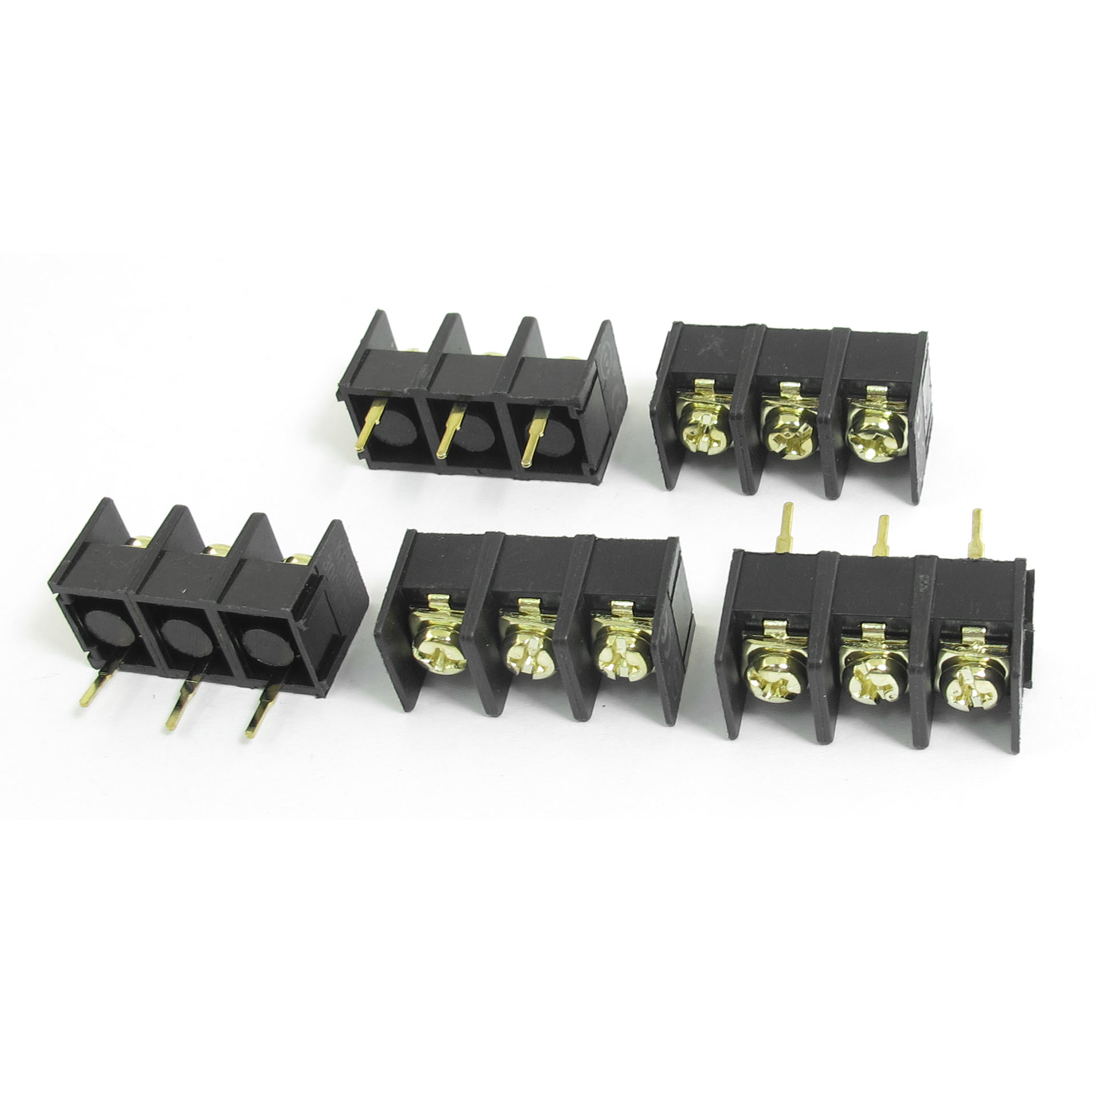 5pcs 300V 25A 3P Pole 9.5mm Pitch Single Row PCB Board Black Screw Terminal Barrier Block Connector